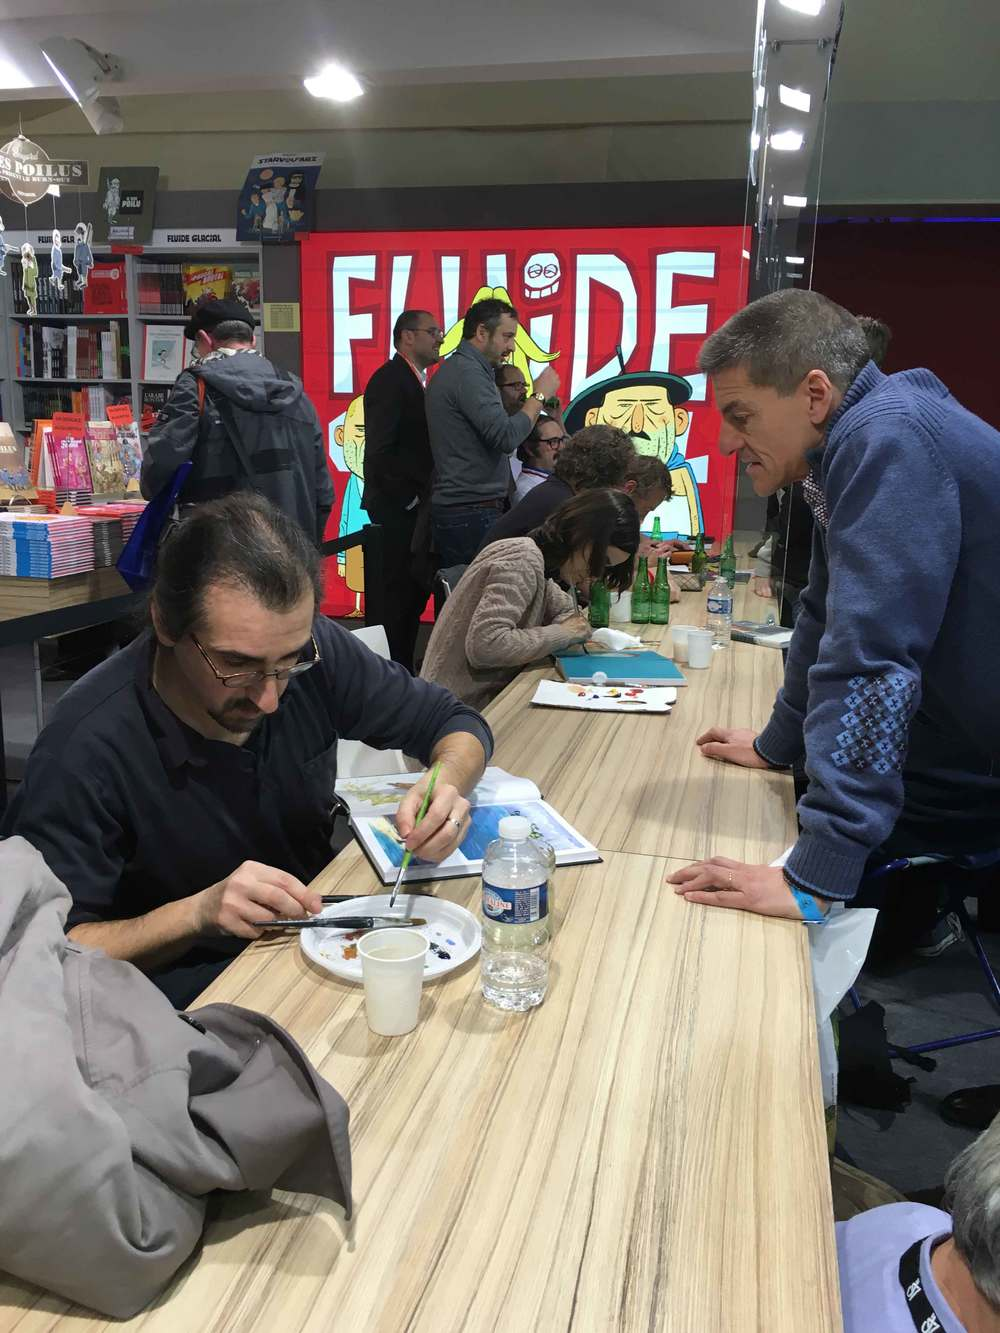 design-stand-festival-bd-angouleme-casterman-agence-narrative